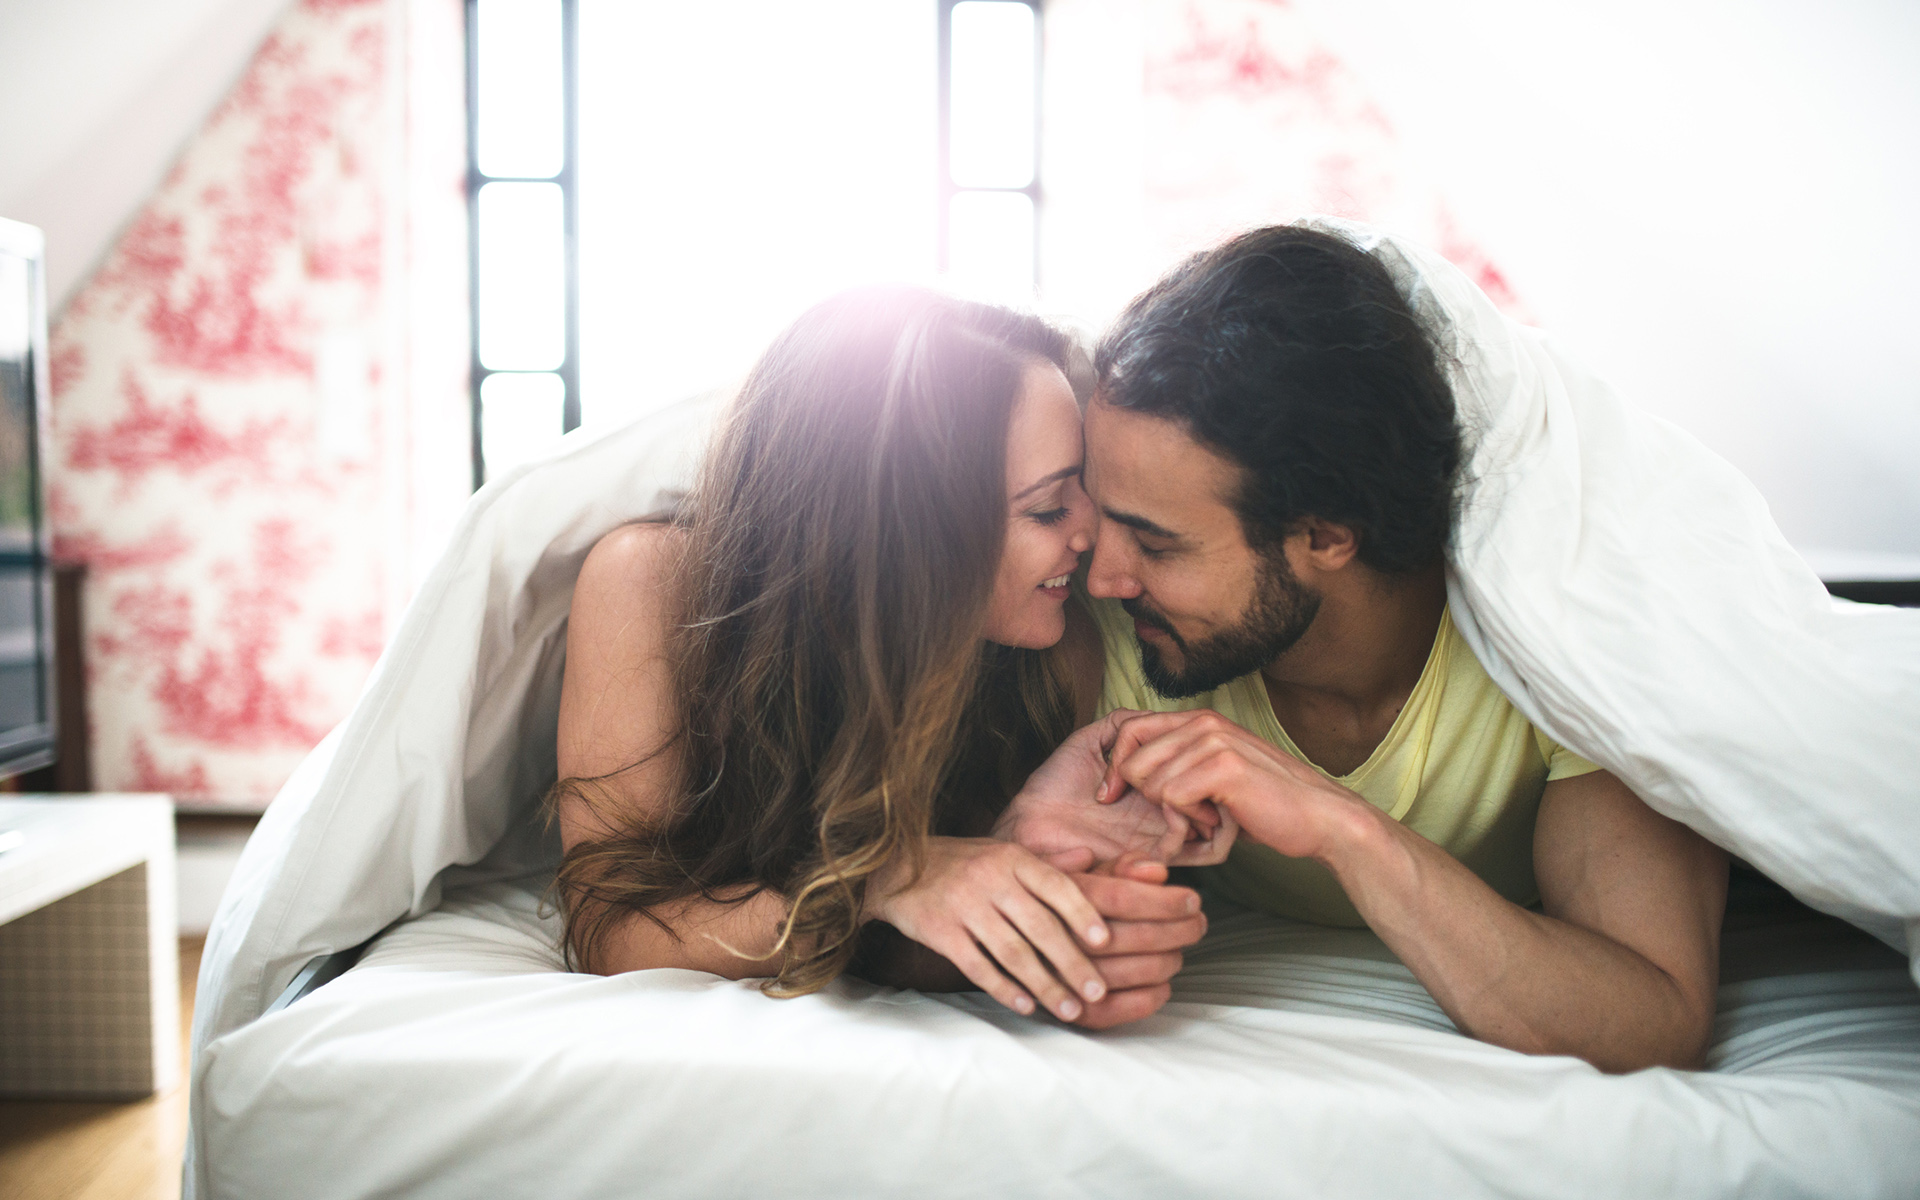 Can orgasms help your endocannabinoid system? 1